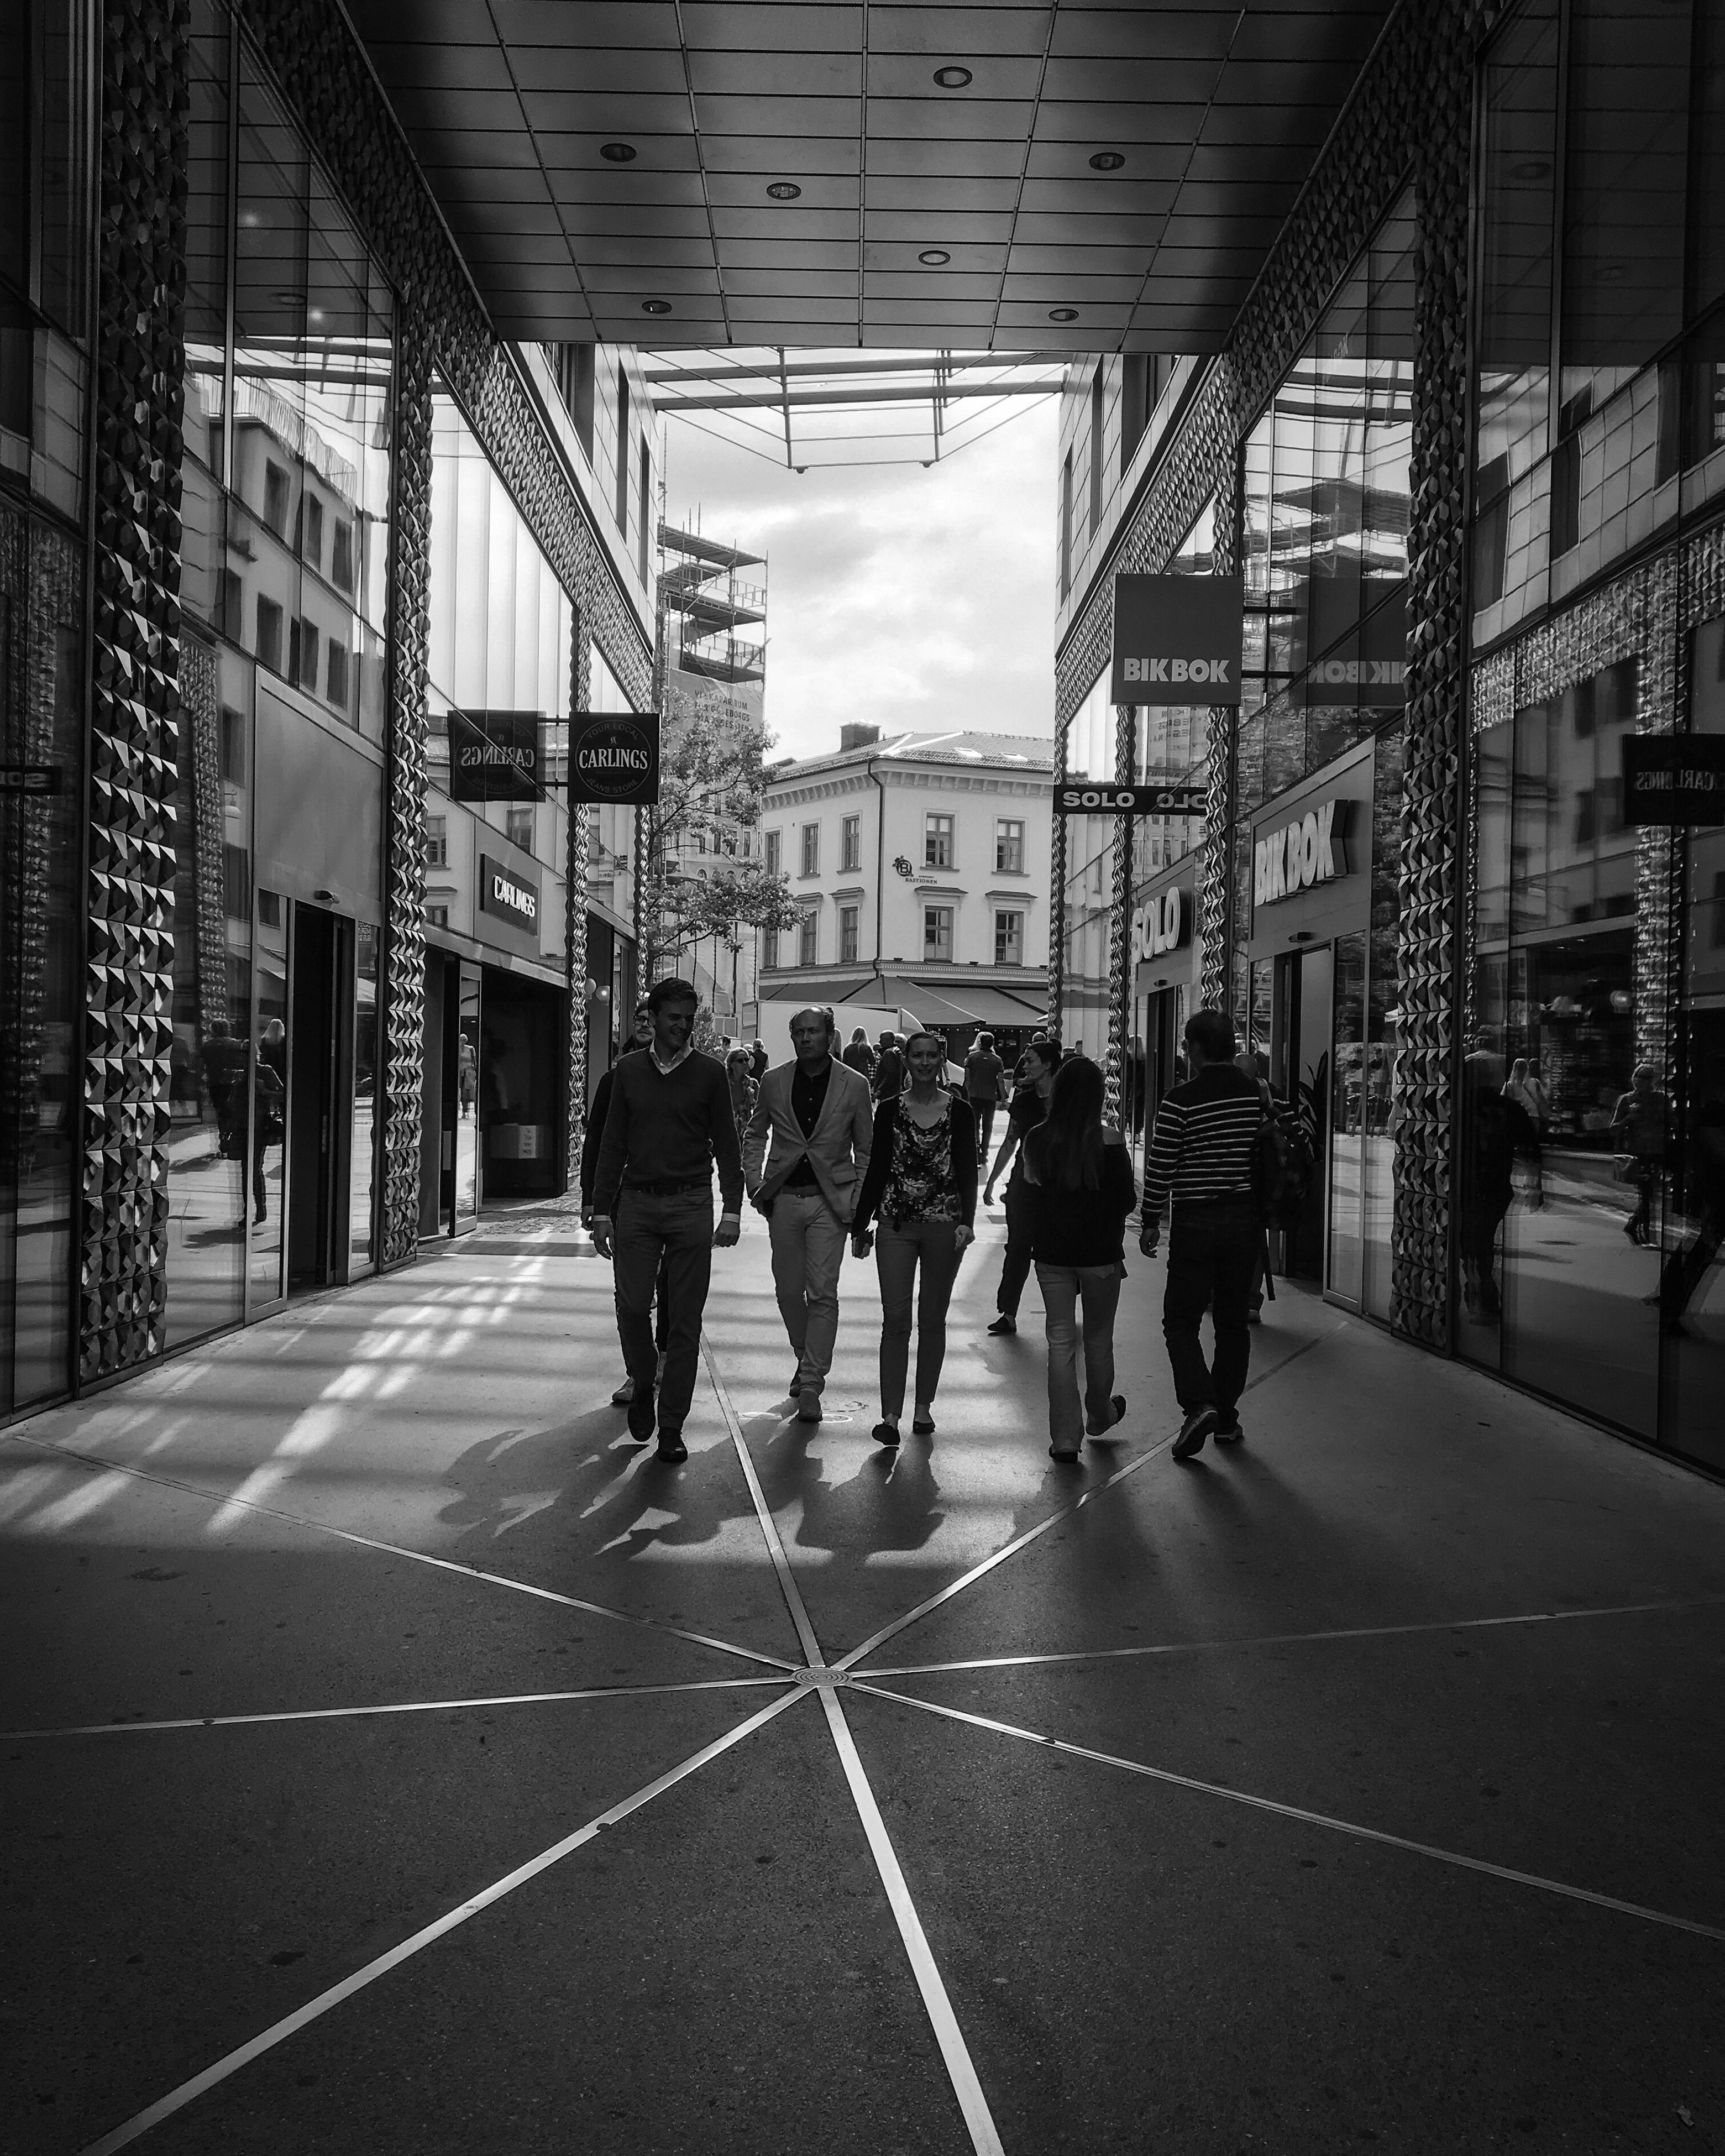 building exterior, architecture, built structure, men, walking, street, road marking, city, residential building, full length, road, rear view, person, city life, crossing, city street, casual clothing, day, outdoors, the way forward, sky